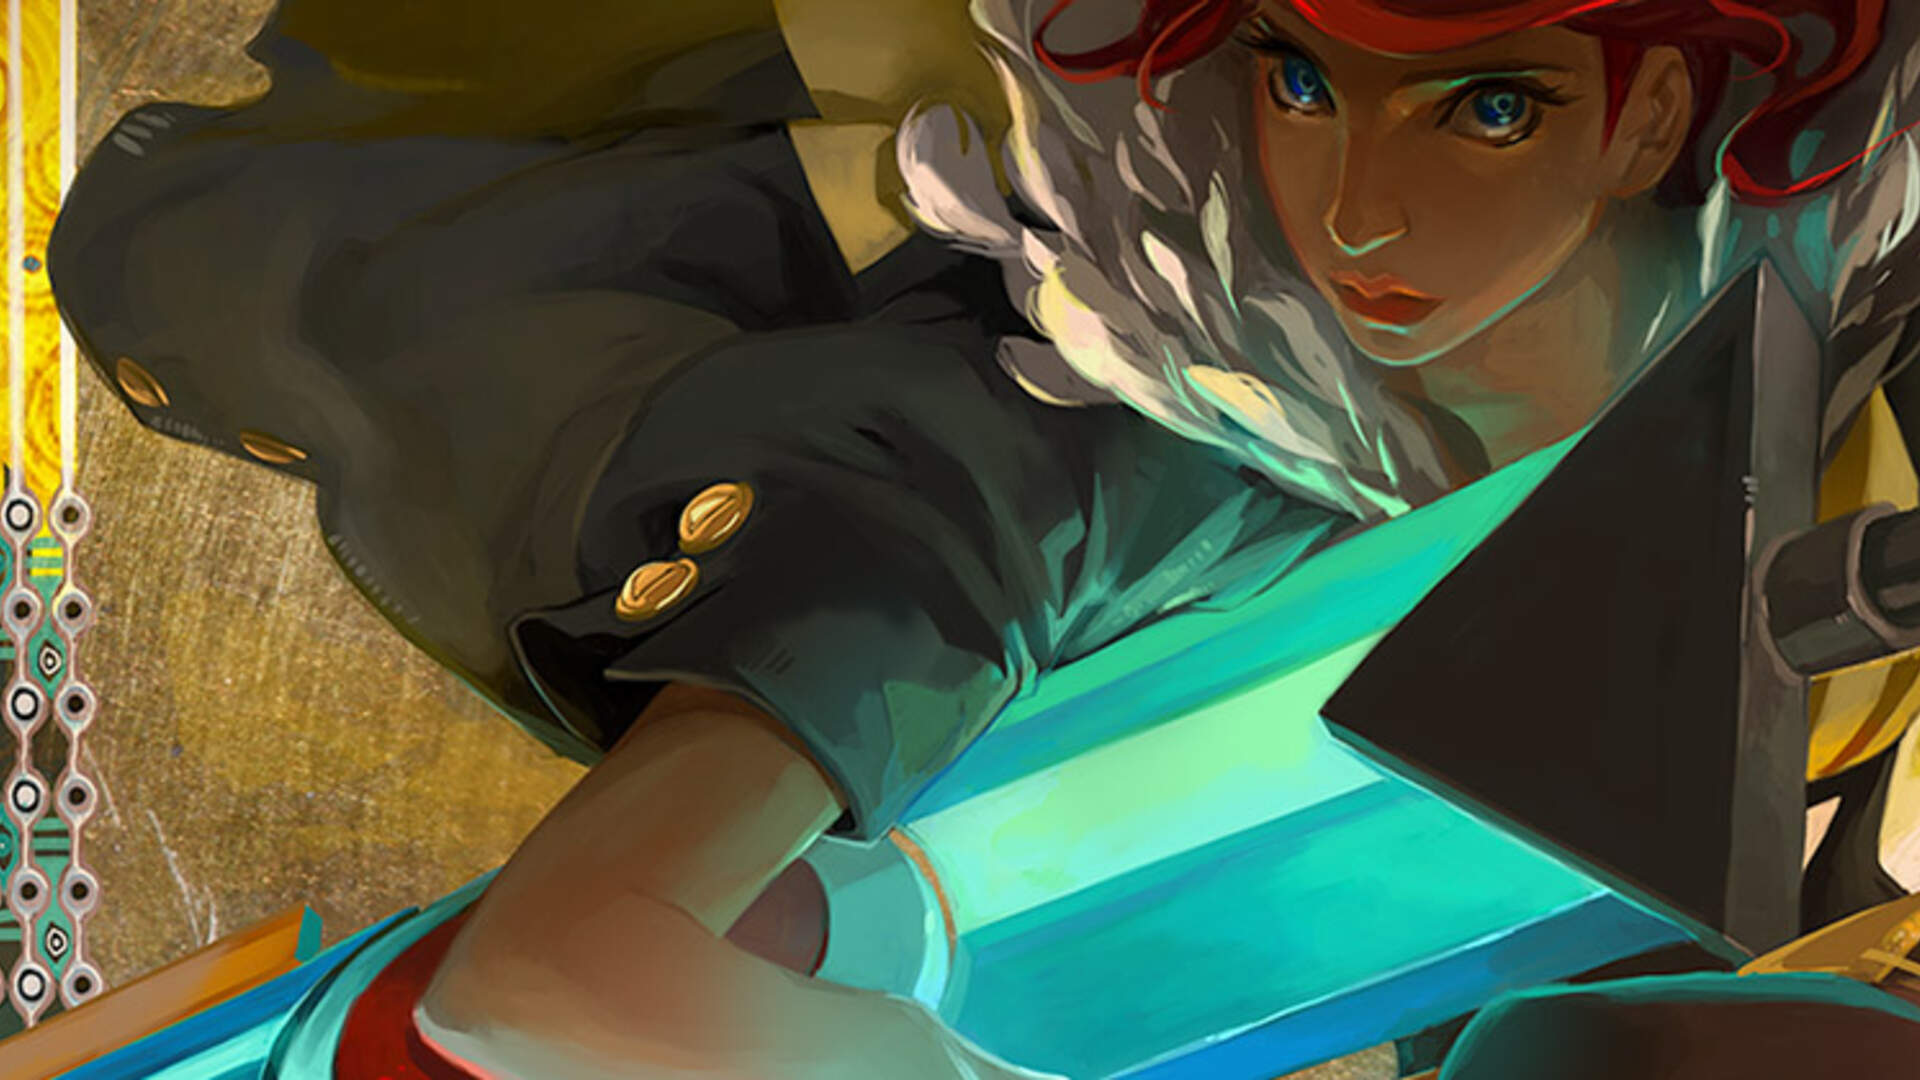 Transistor PS4 Review: The Touching Tale of A Girl and Her Sword